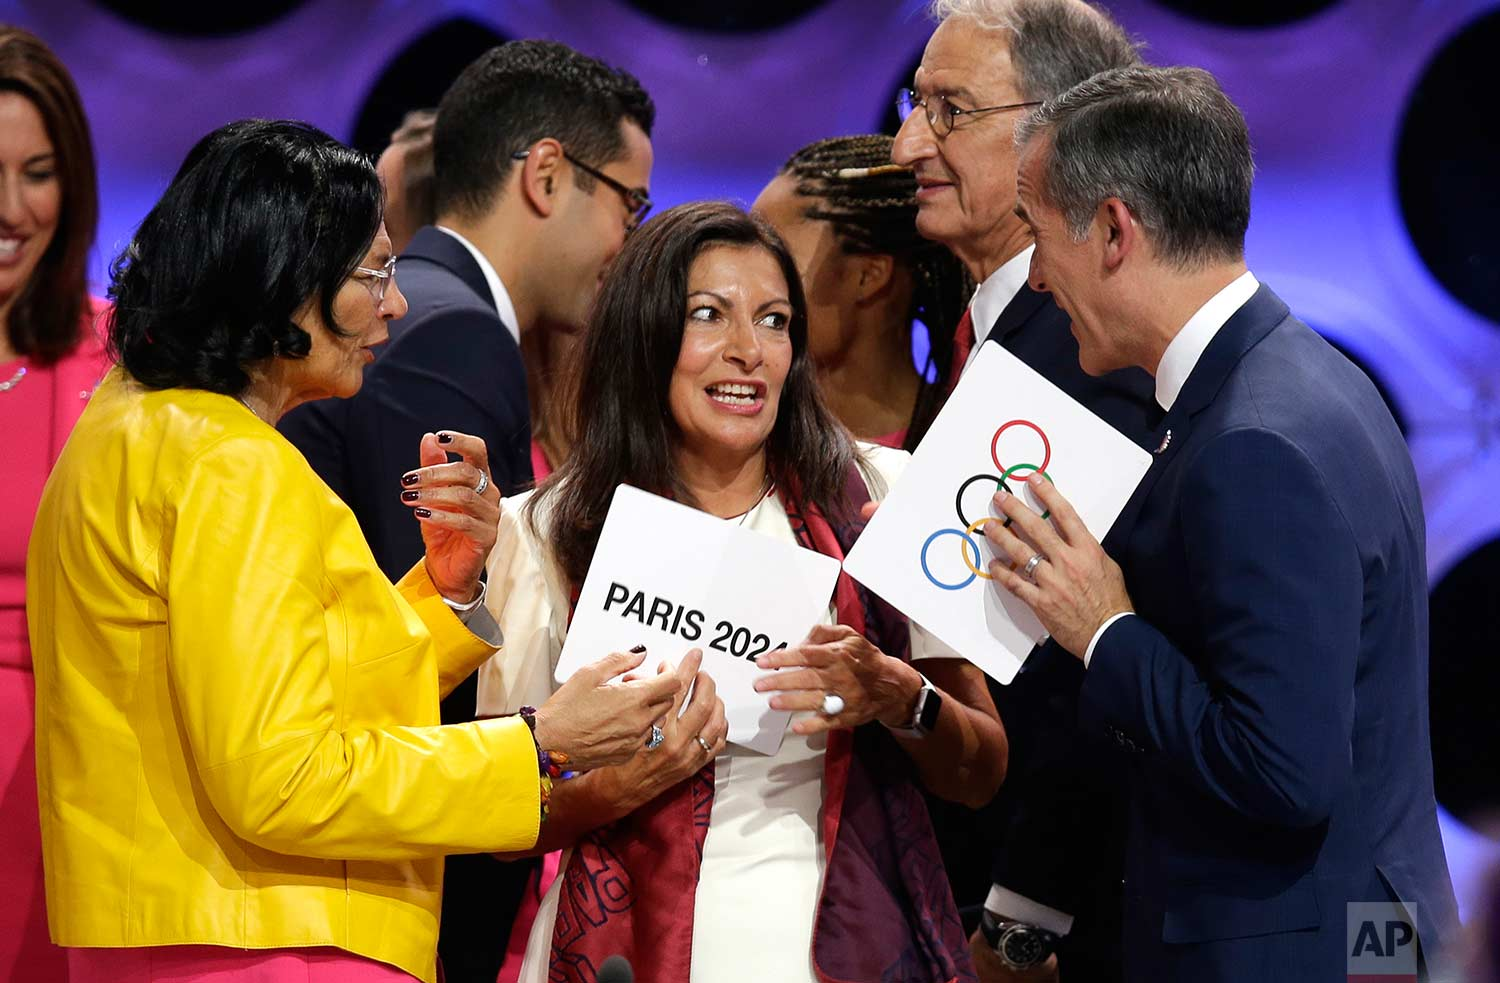 Paris Mayor Anne Hidalgo, center, speaks with Los Angeles Mayor Eric Garrett, right, and Los Angeles International Olympic Committee member Anita DeFrantz, left, at the end of the IOC session in Lima, Peru, Wednesday, Sept. 13, 2017. (AP Photo/Martin Mejia)